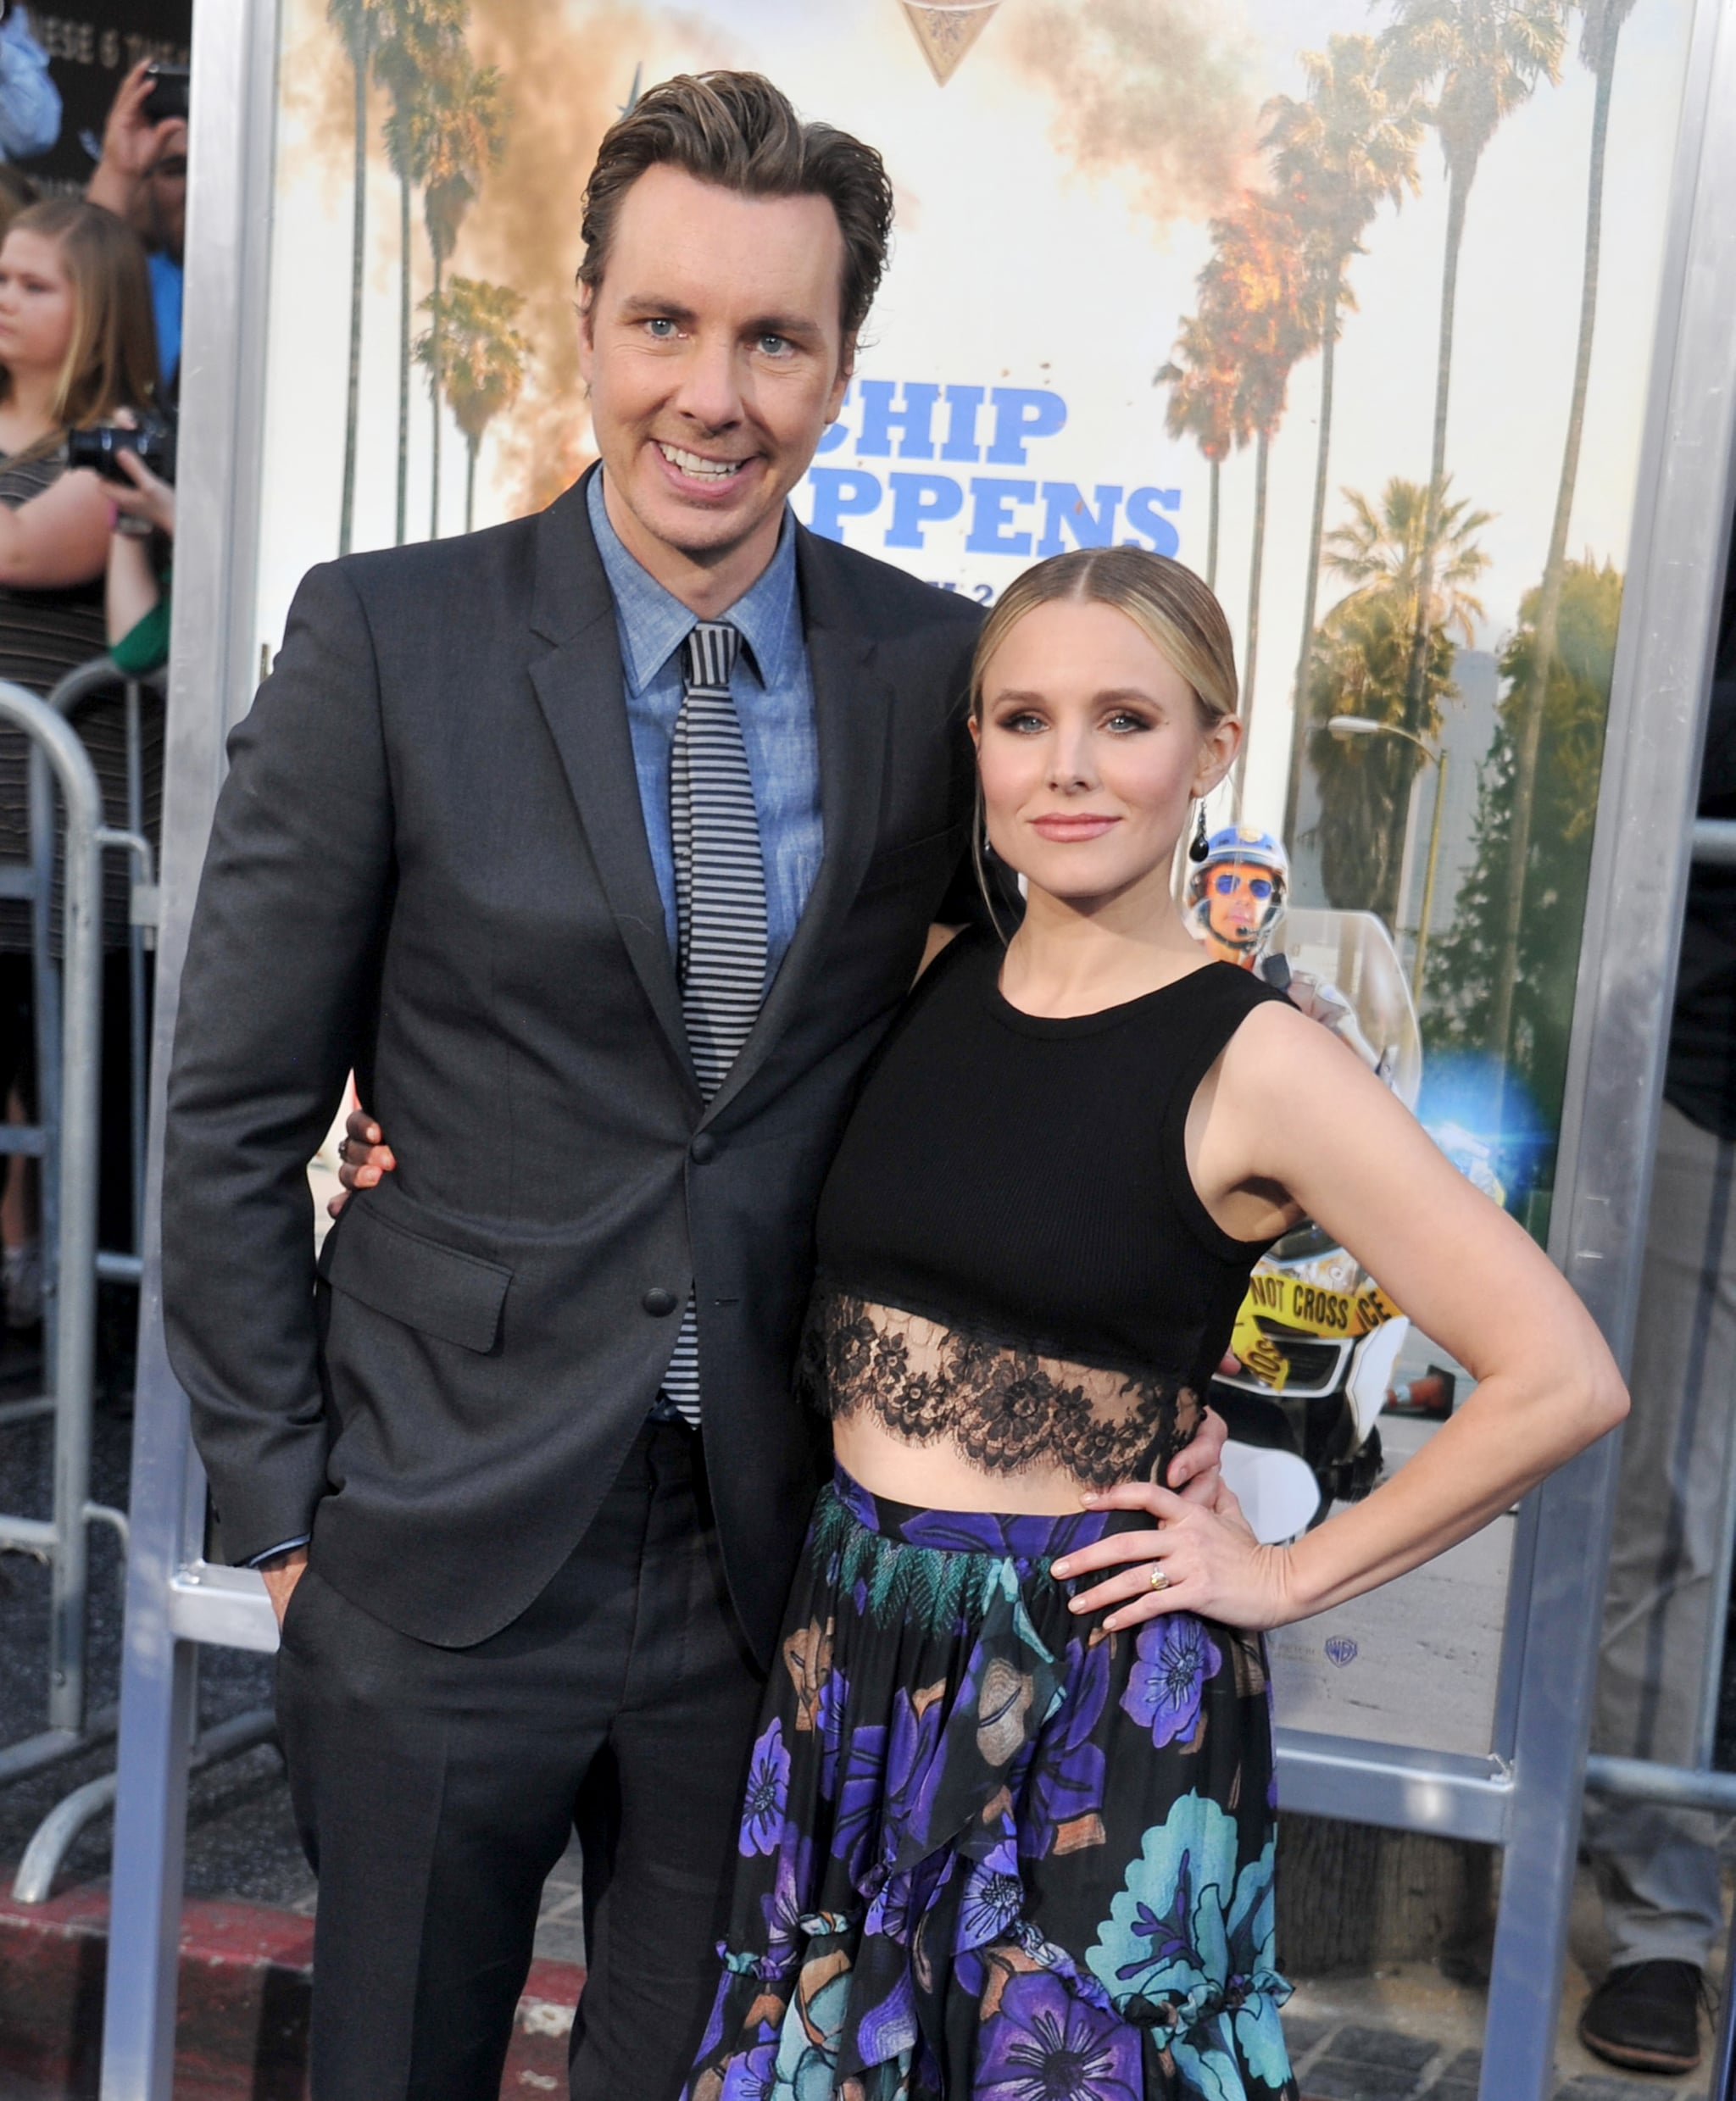 HOLLYWOOD, CA - MARCH 20:  Actors Dax Shepard and Kristen Bell arrive at the premiere of Warner Bros. Pictures'